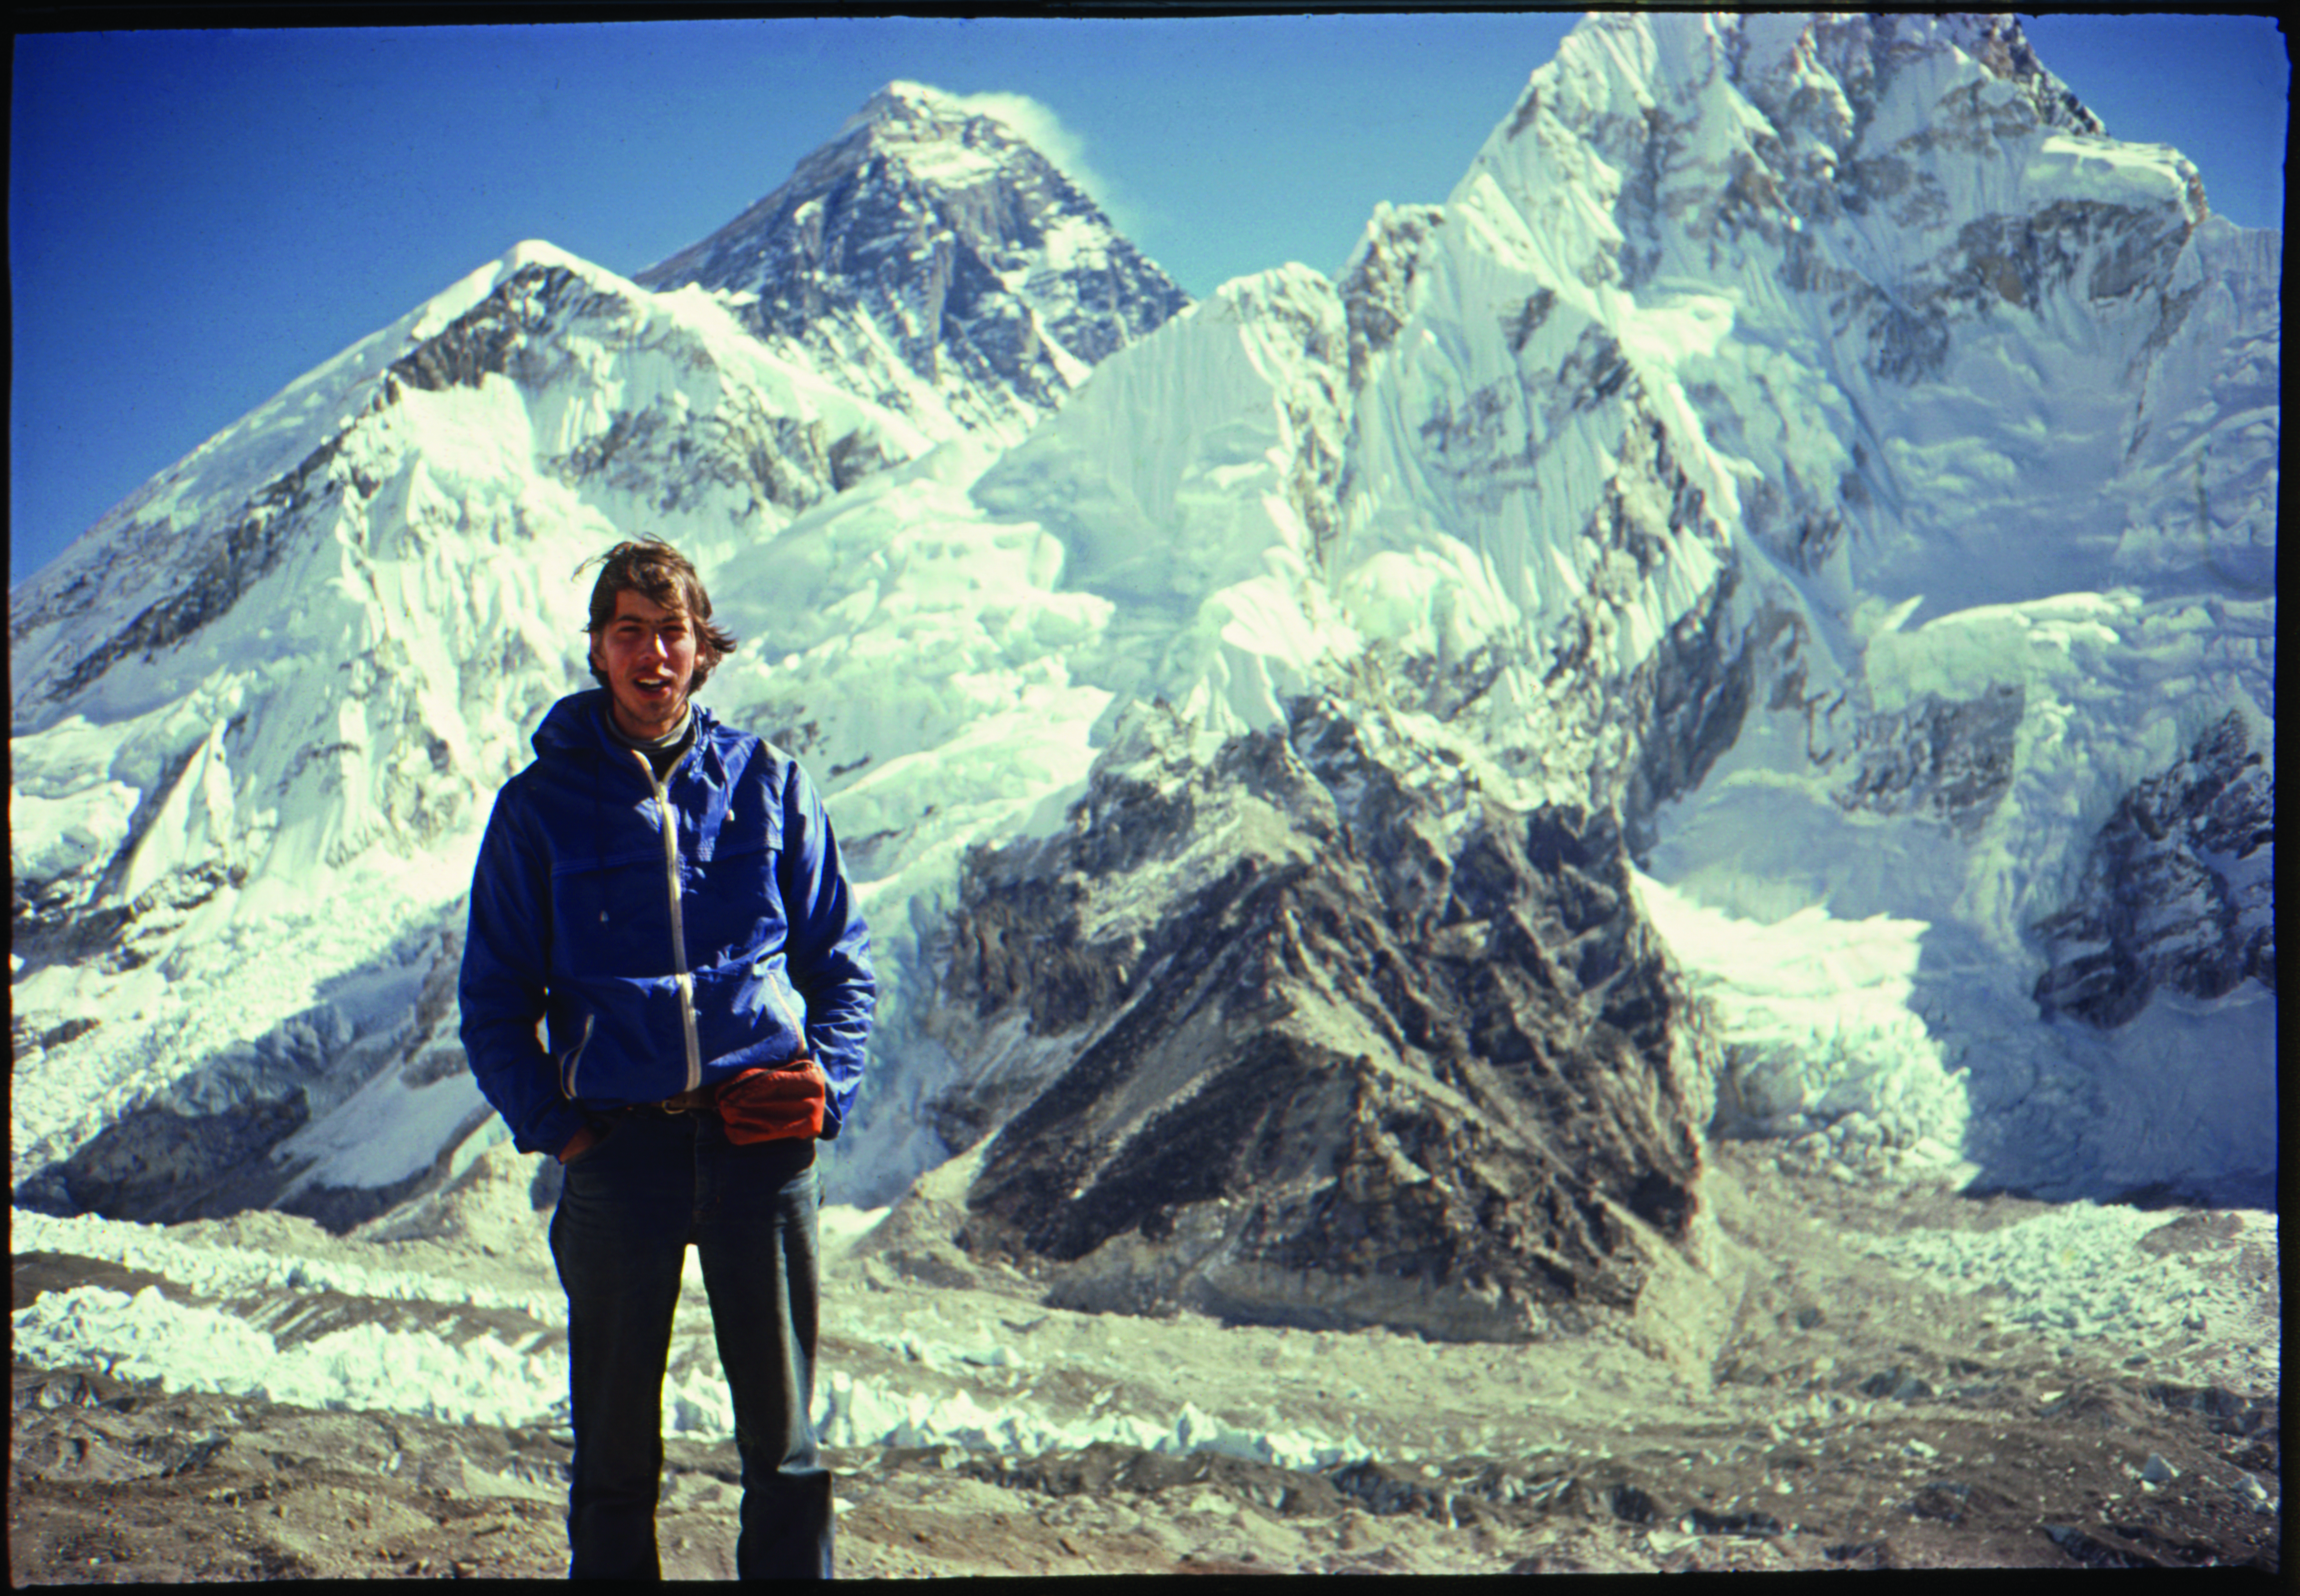 Author in Himalayas with Everest in the background